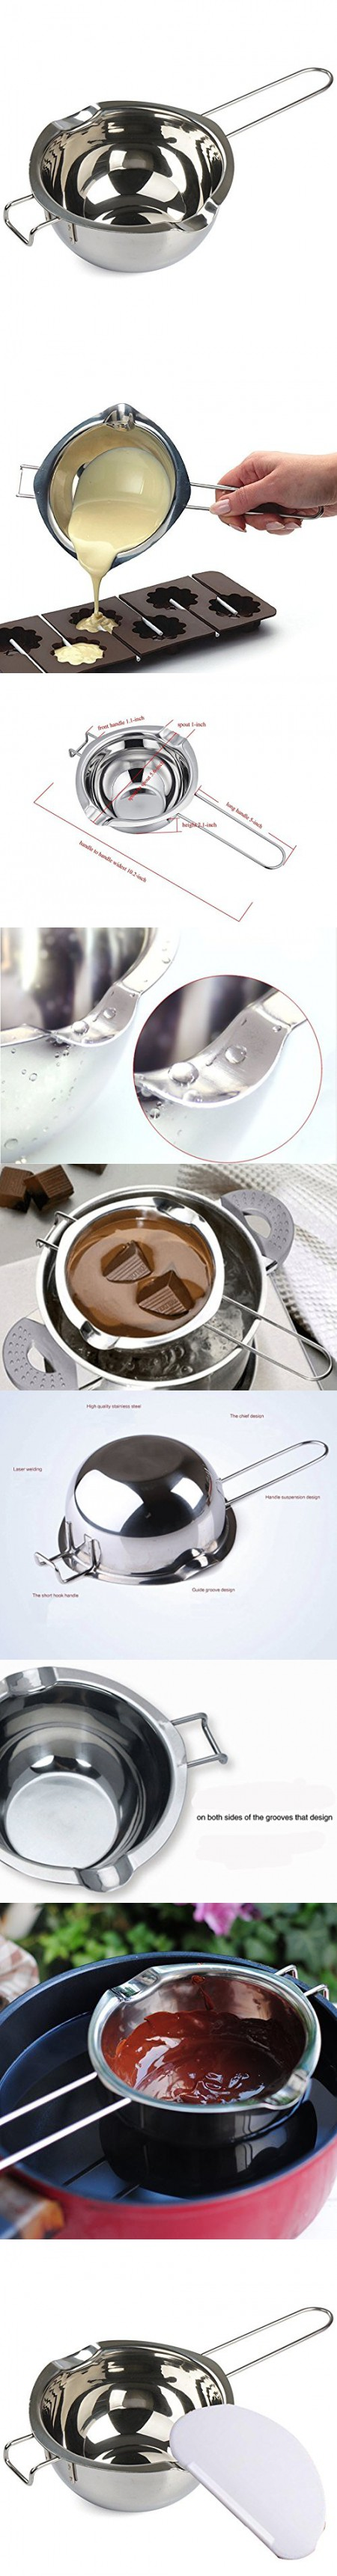 18/8 Stainless Universal Double Boiler,Melting Pot for Butter Chocolate Cheese Caramel+silicone spatula